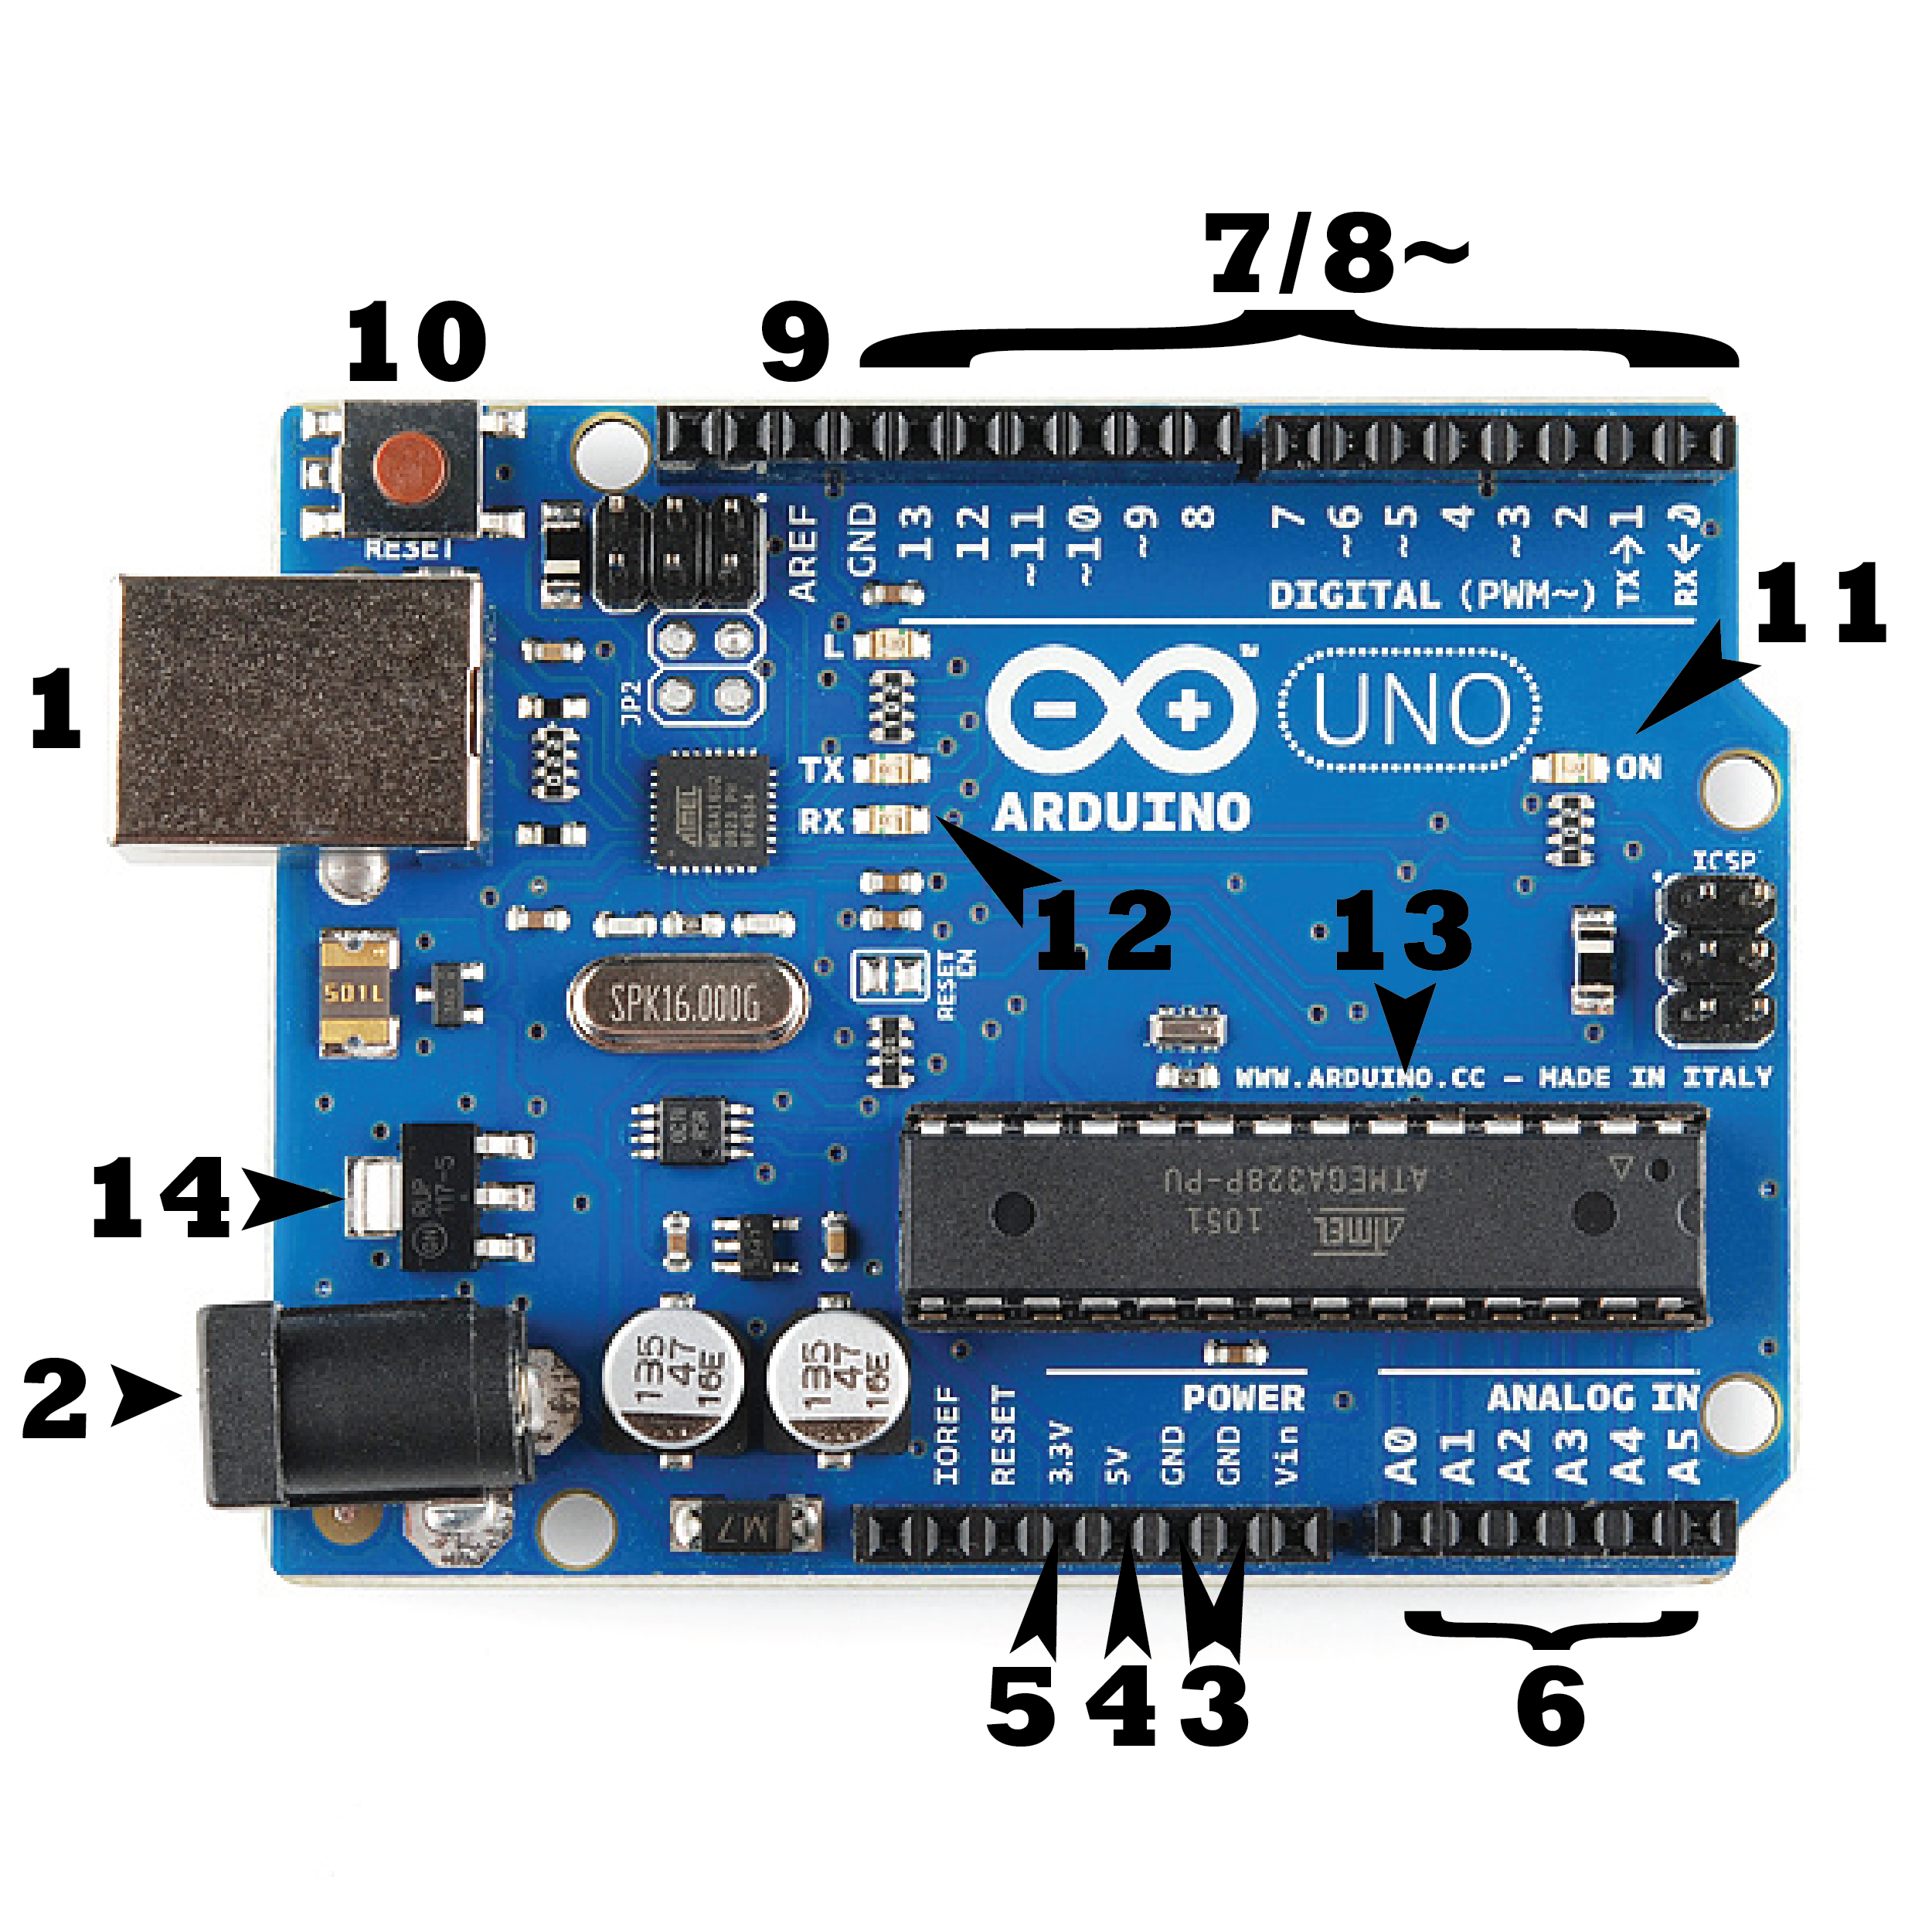 Getting Started With Arduino Codeproject Simple Digital Voltmeter Circuit Diagram Document Buzz The Above Is Board Which Does Miracles Lets Understand Points Mentioned In And Their Usage